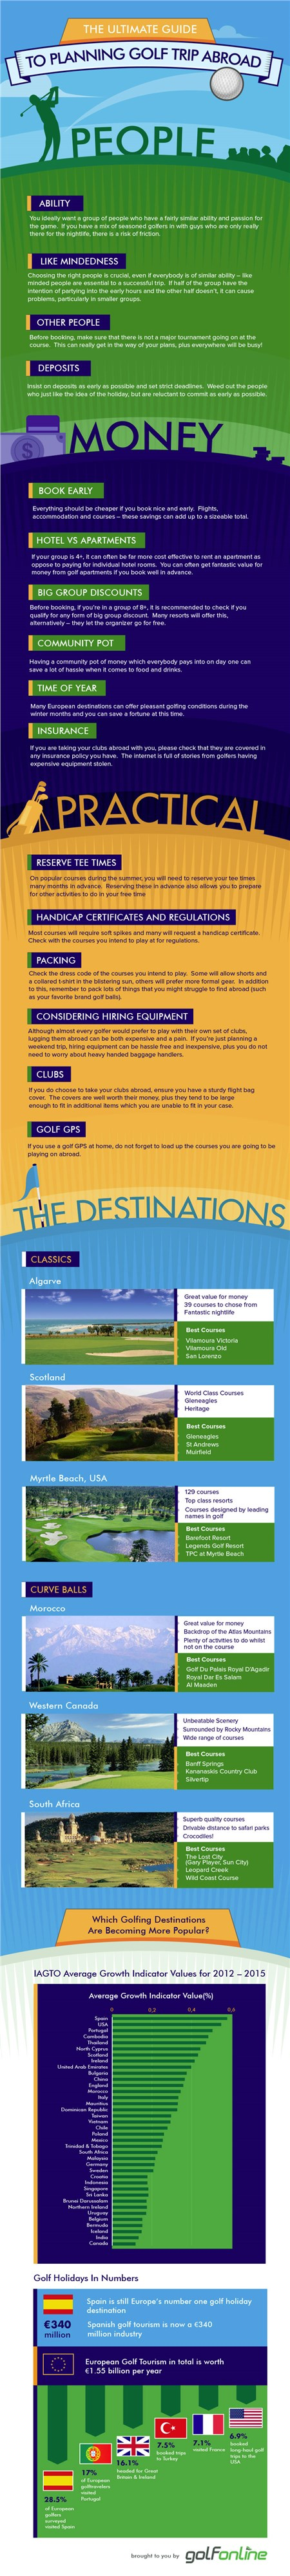 The Ultimate Guide To Planning A Golf Trip Abroad